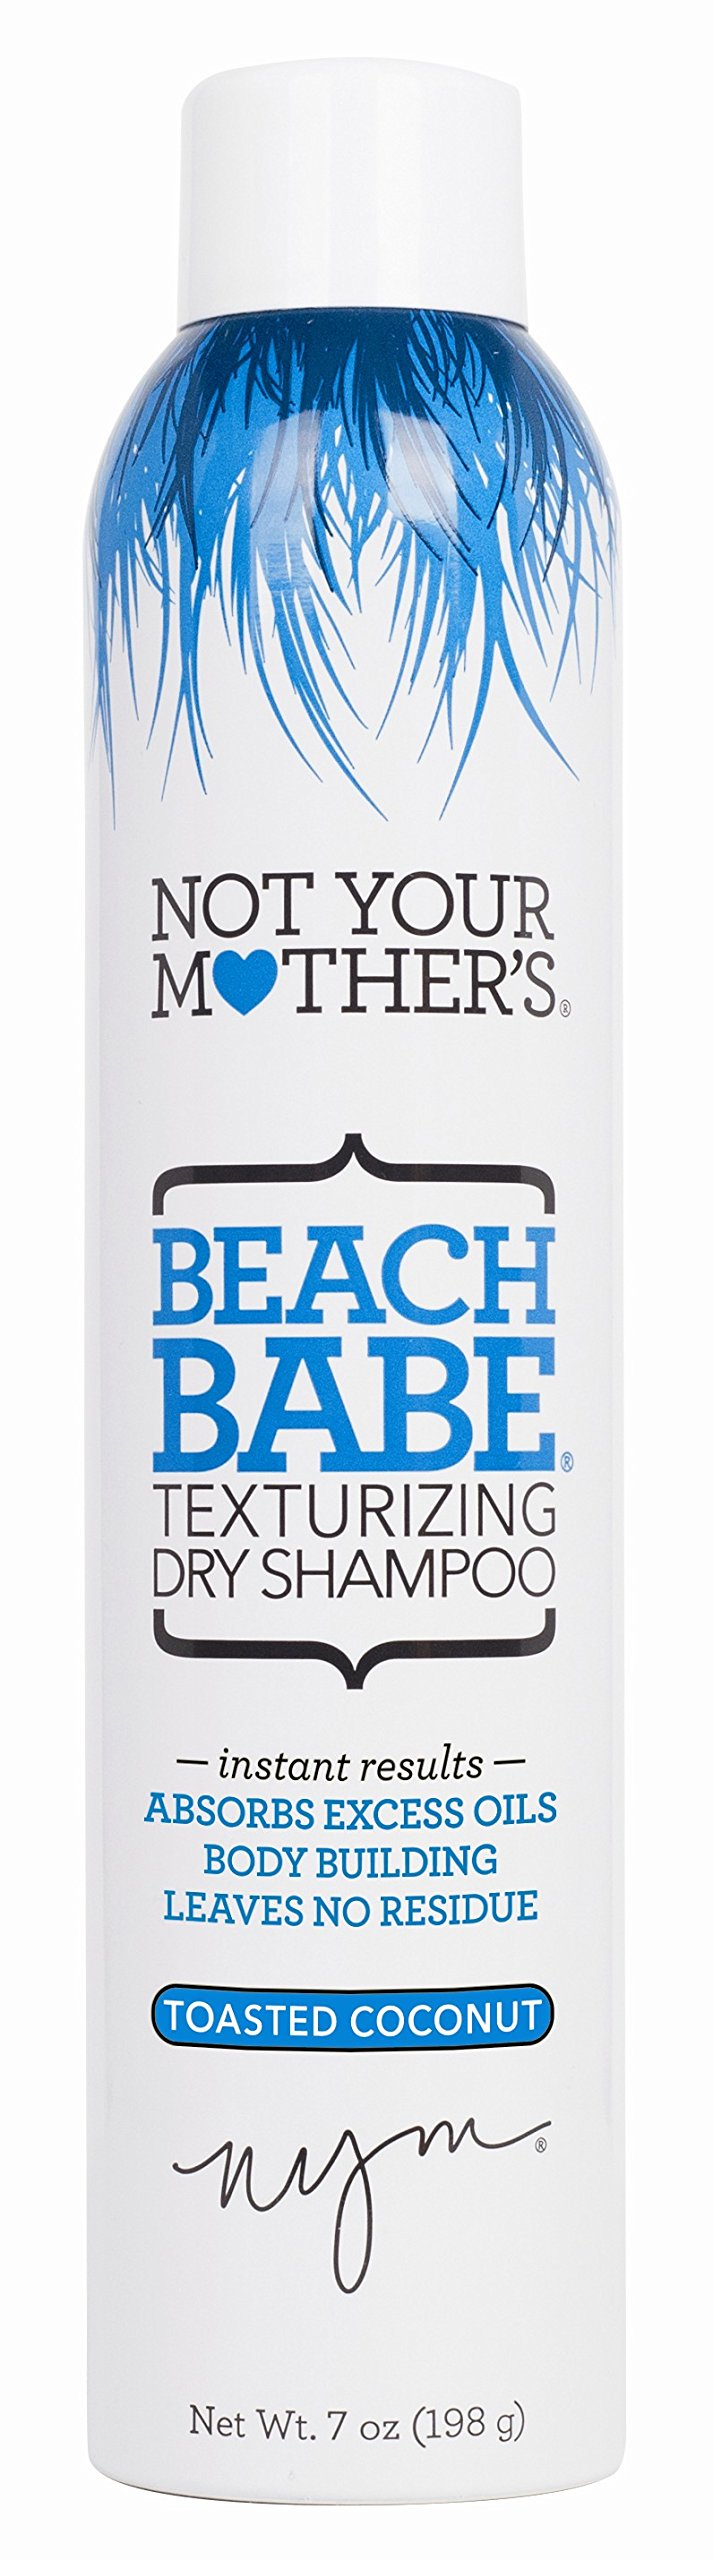 Not Your Mothers Shampoo Dry Beach Babe 7 Ounce Texturizing (207ml) (6 Pack) by Not Your Mother's